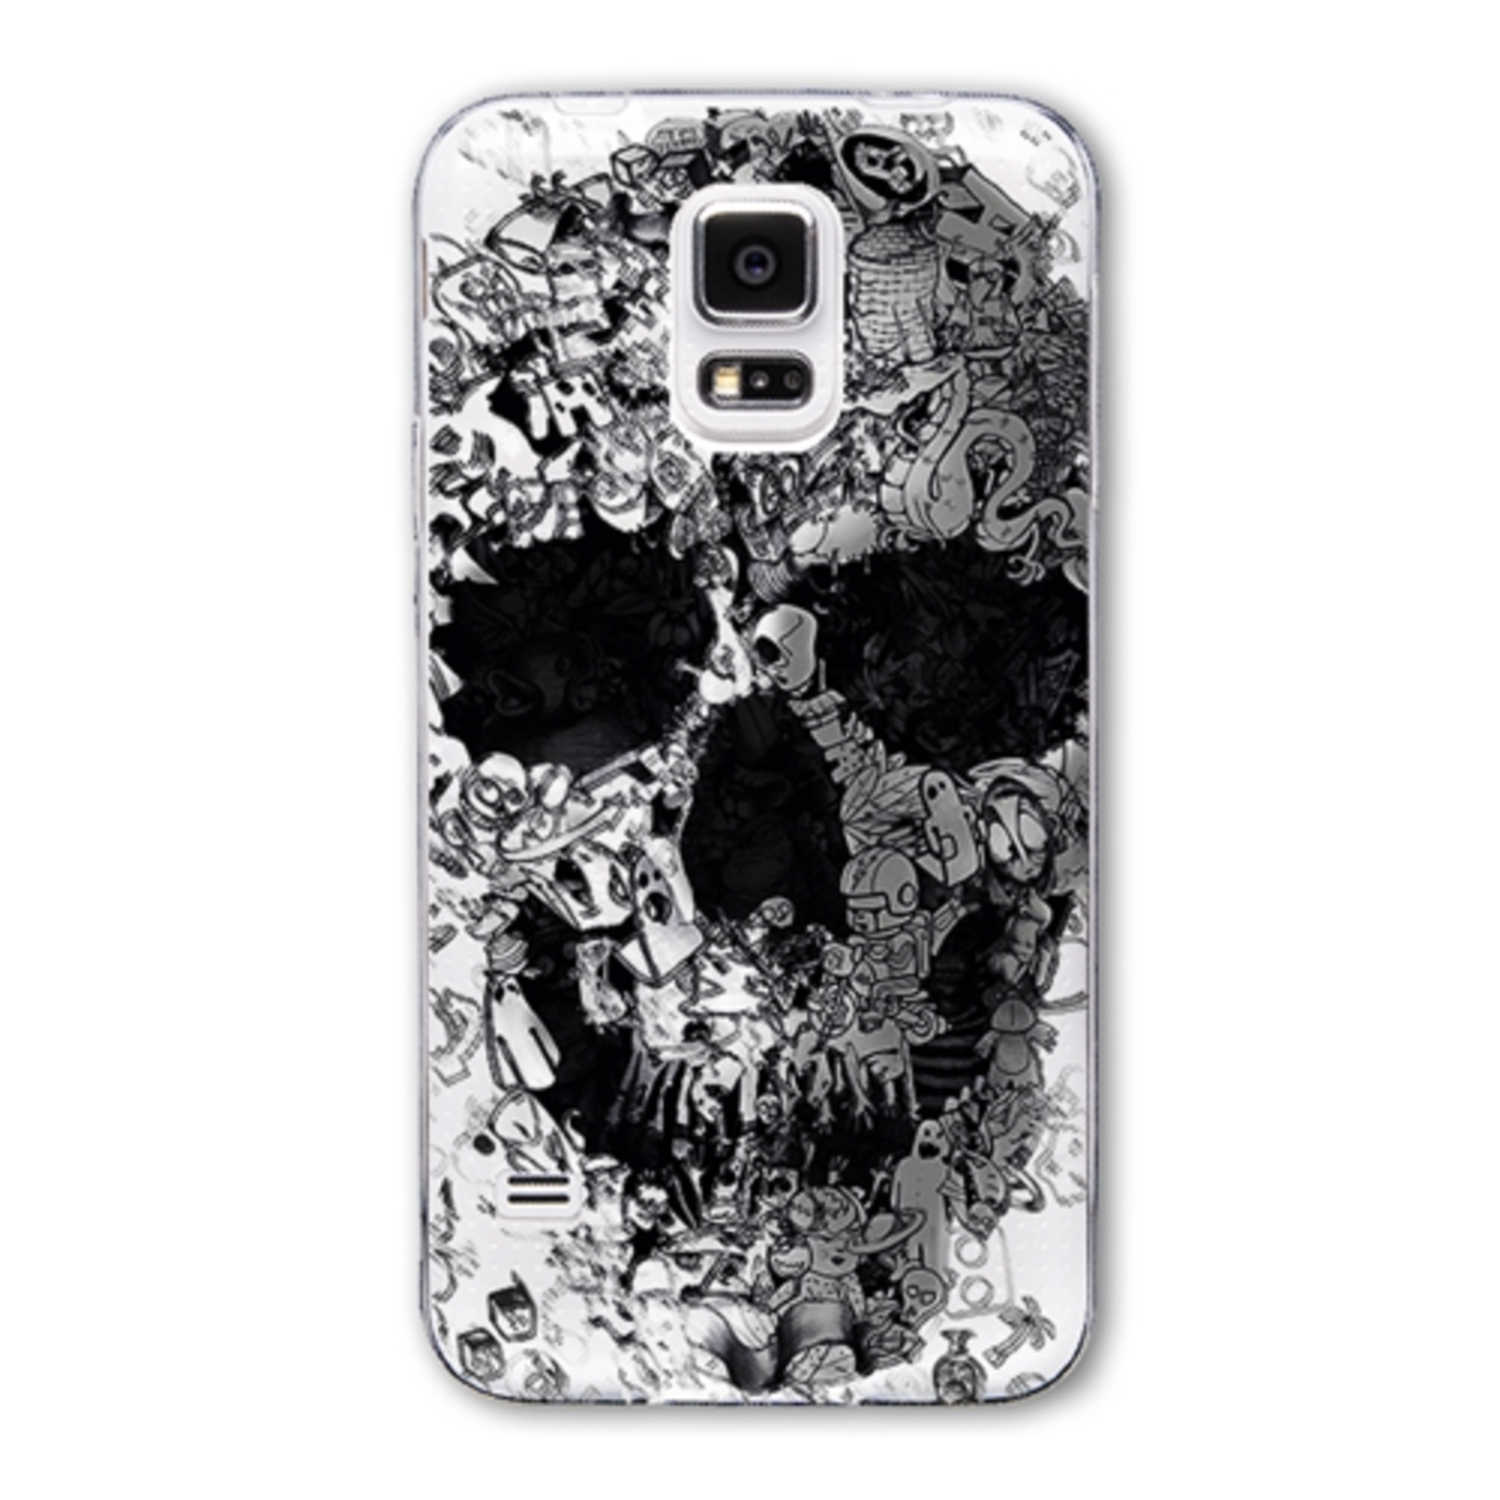 Kritzel Case Collection Galaxy S5 - Mod. #493